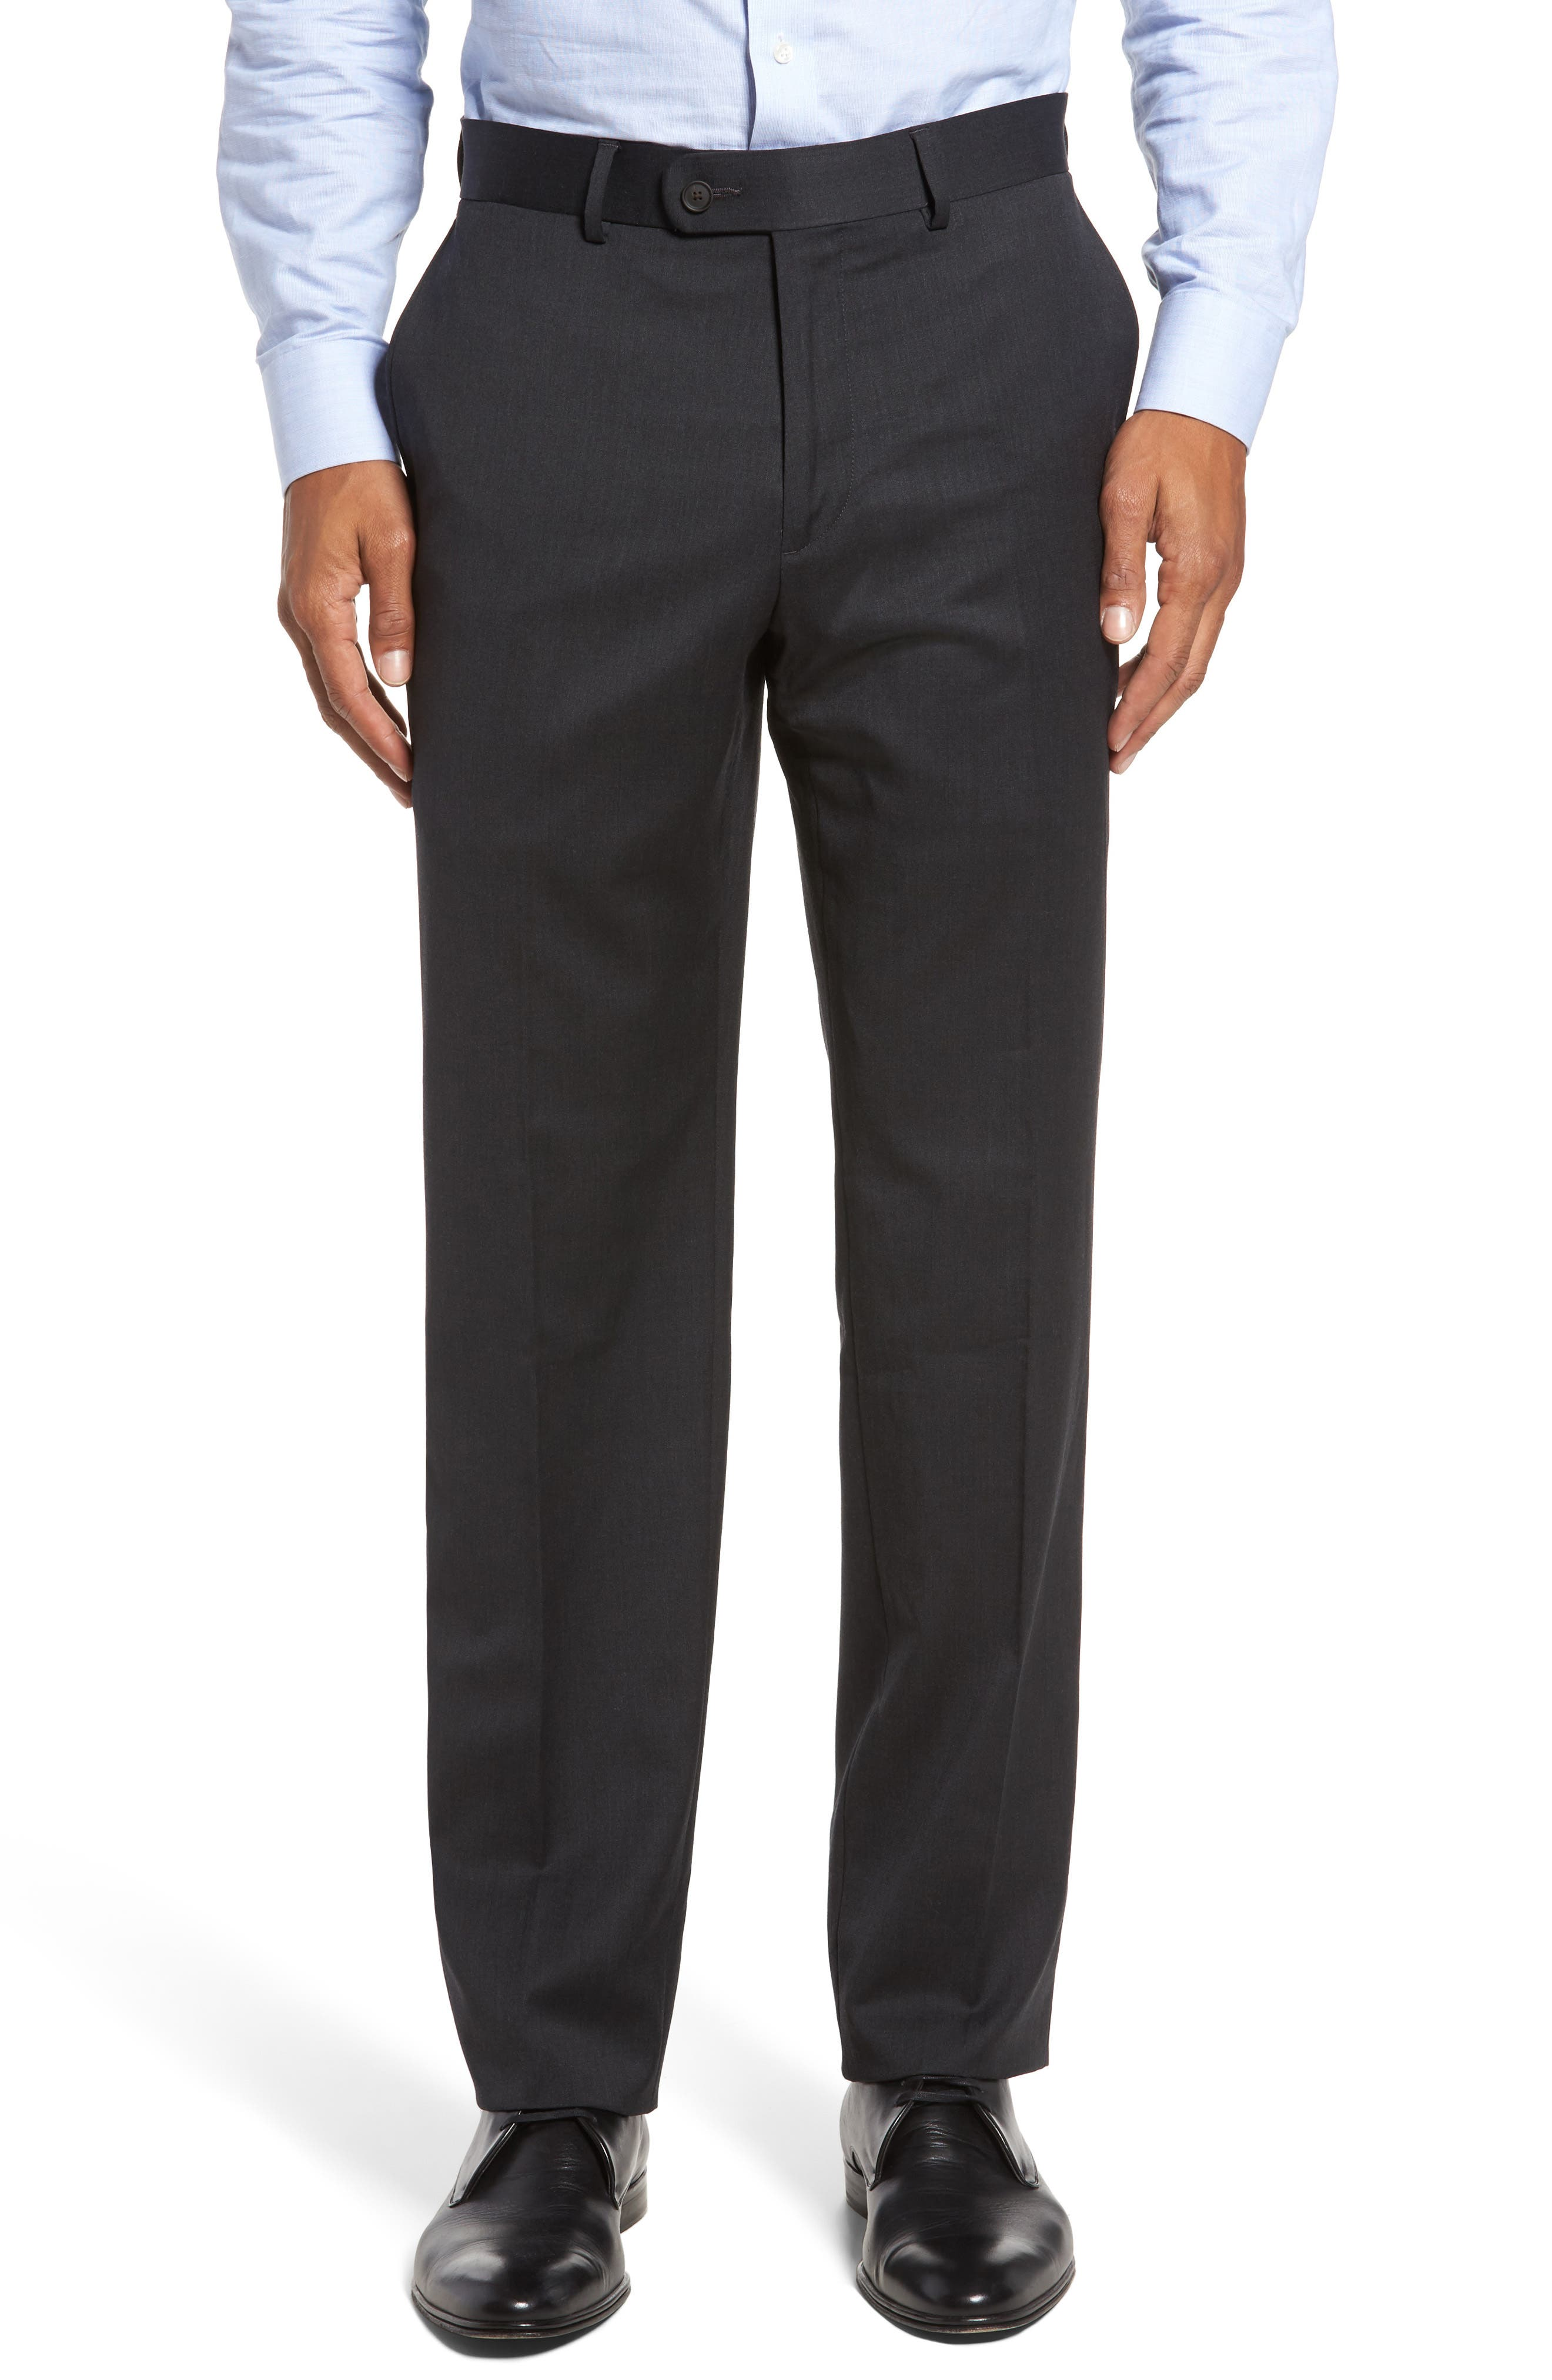 Keidis Aim Classic Fit Stretch Wool Suit,                             Alternate thumbnail 6, color,                             Charcoal